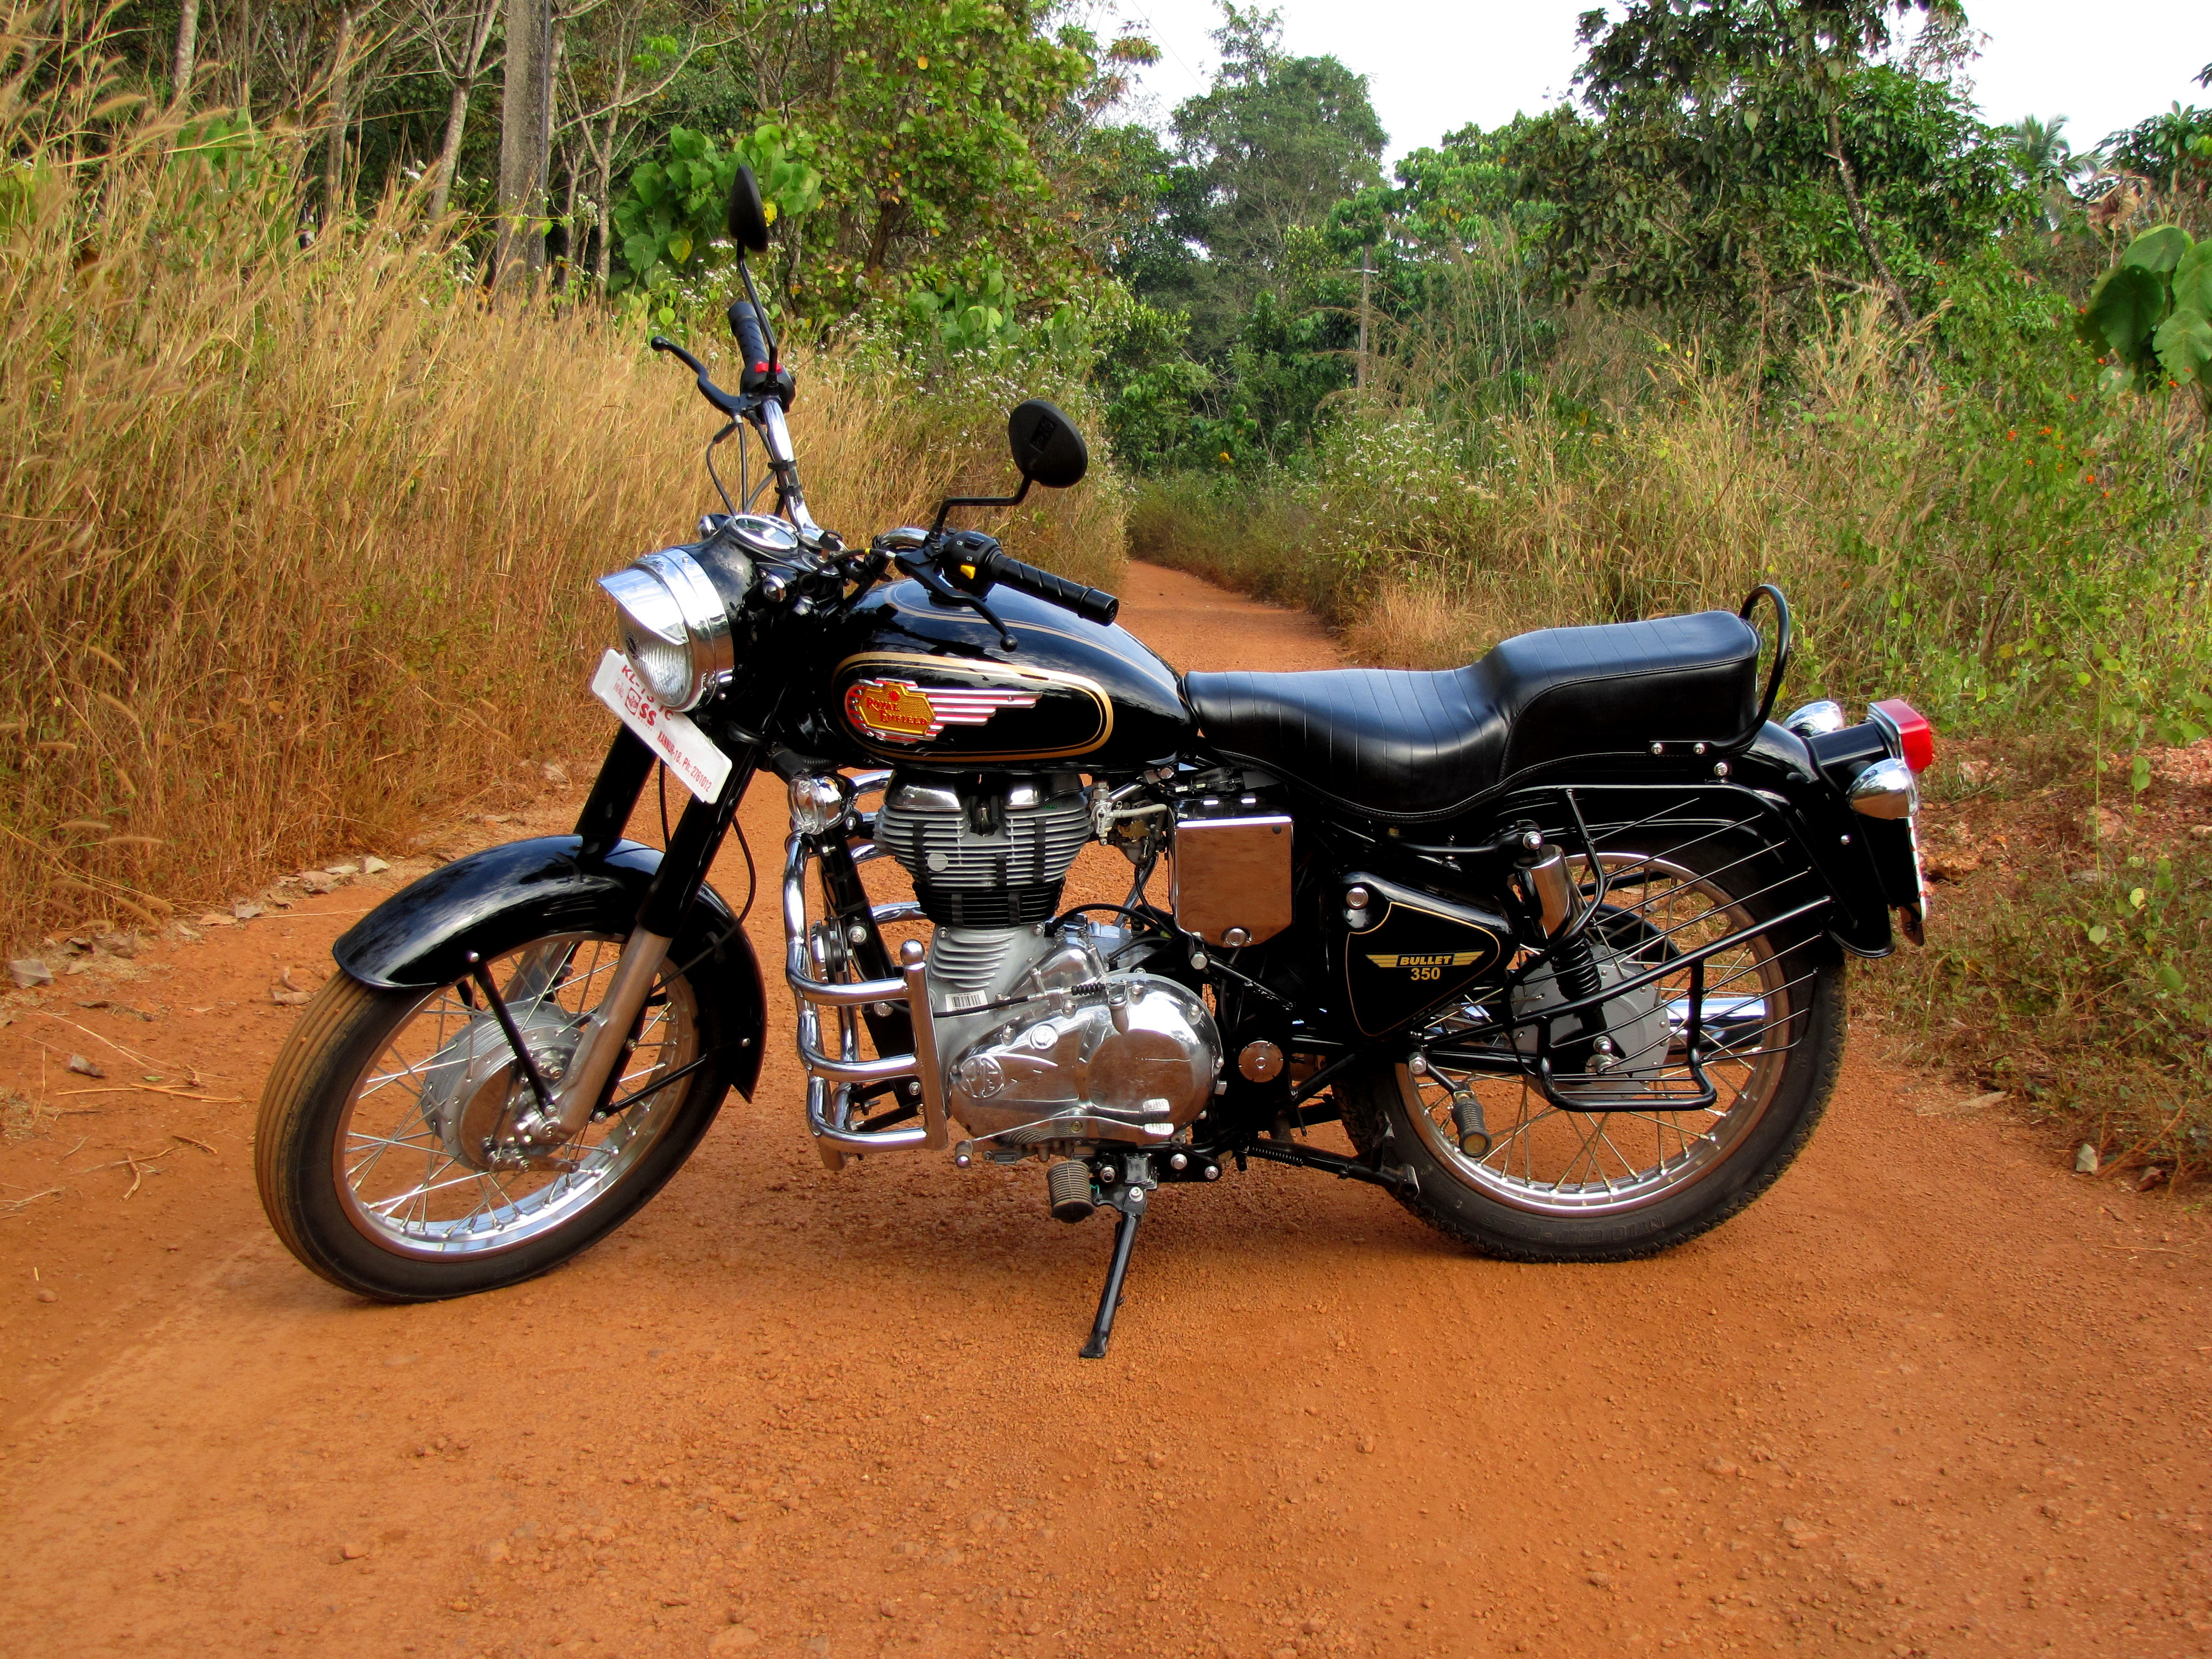 Royal Enfield Bullet 350 Army 1997 images #122763